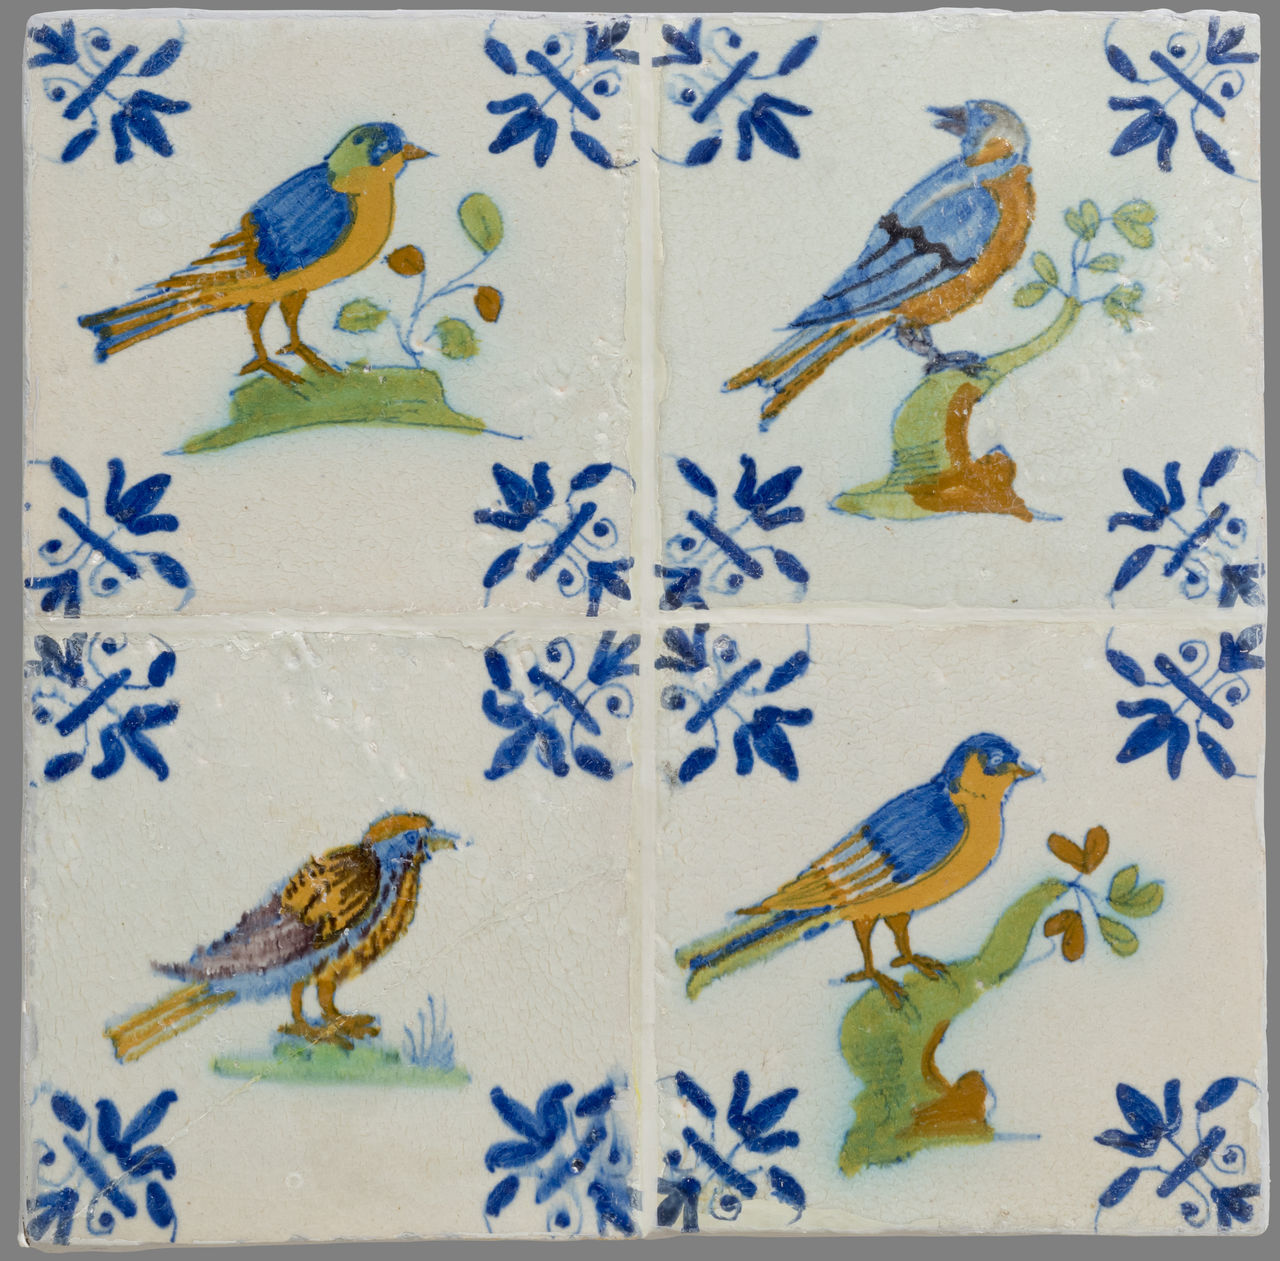 16th Century 17th Century 18th Century Animal Representation Animal Themes Art And Craft Bird Blue Ceramics Close-up Day Floral Pattern Indoors  Netherlands No People Tile